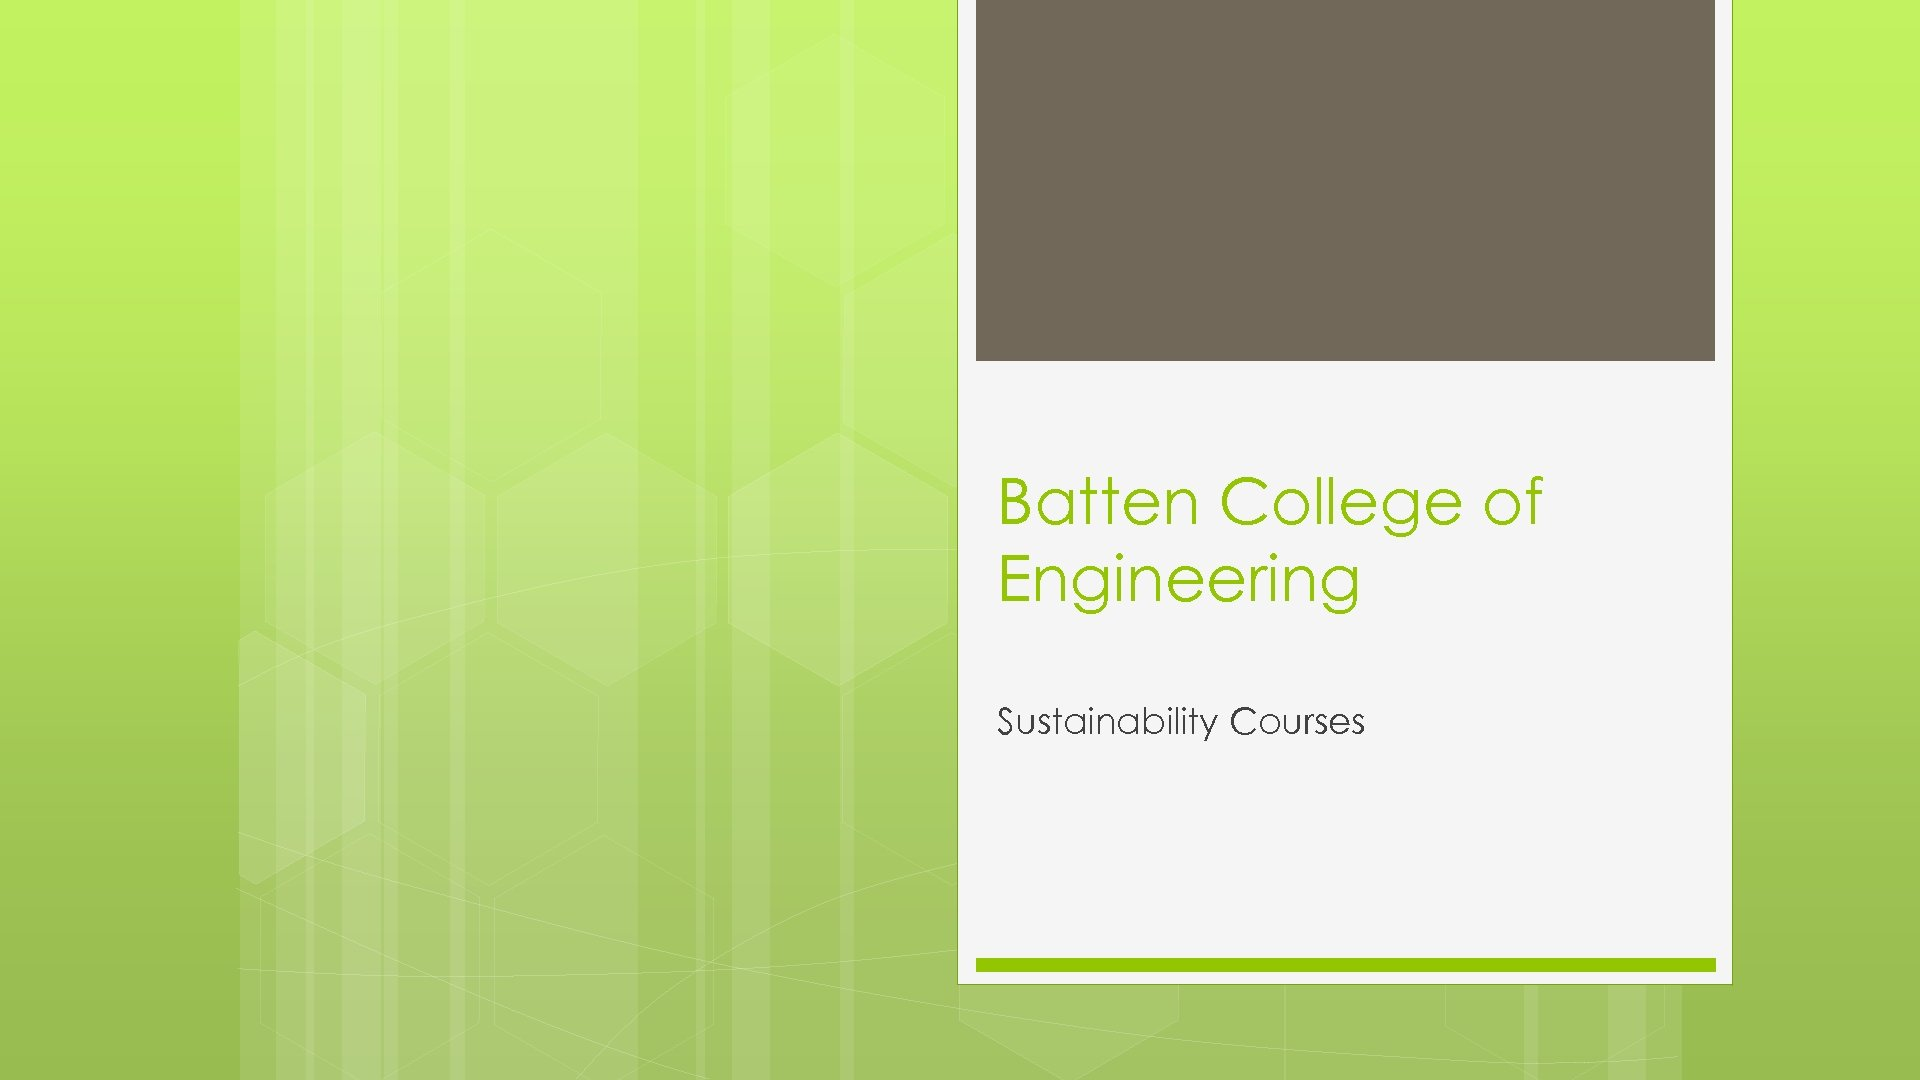 Batten College of Engineering Sustainability Courses